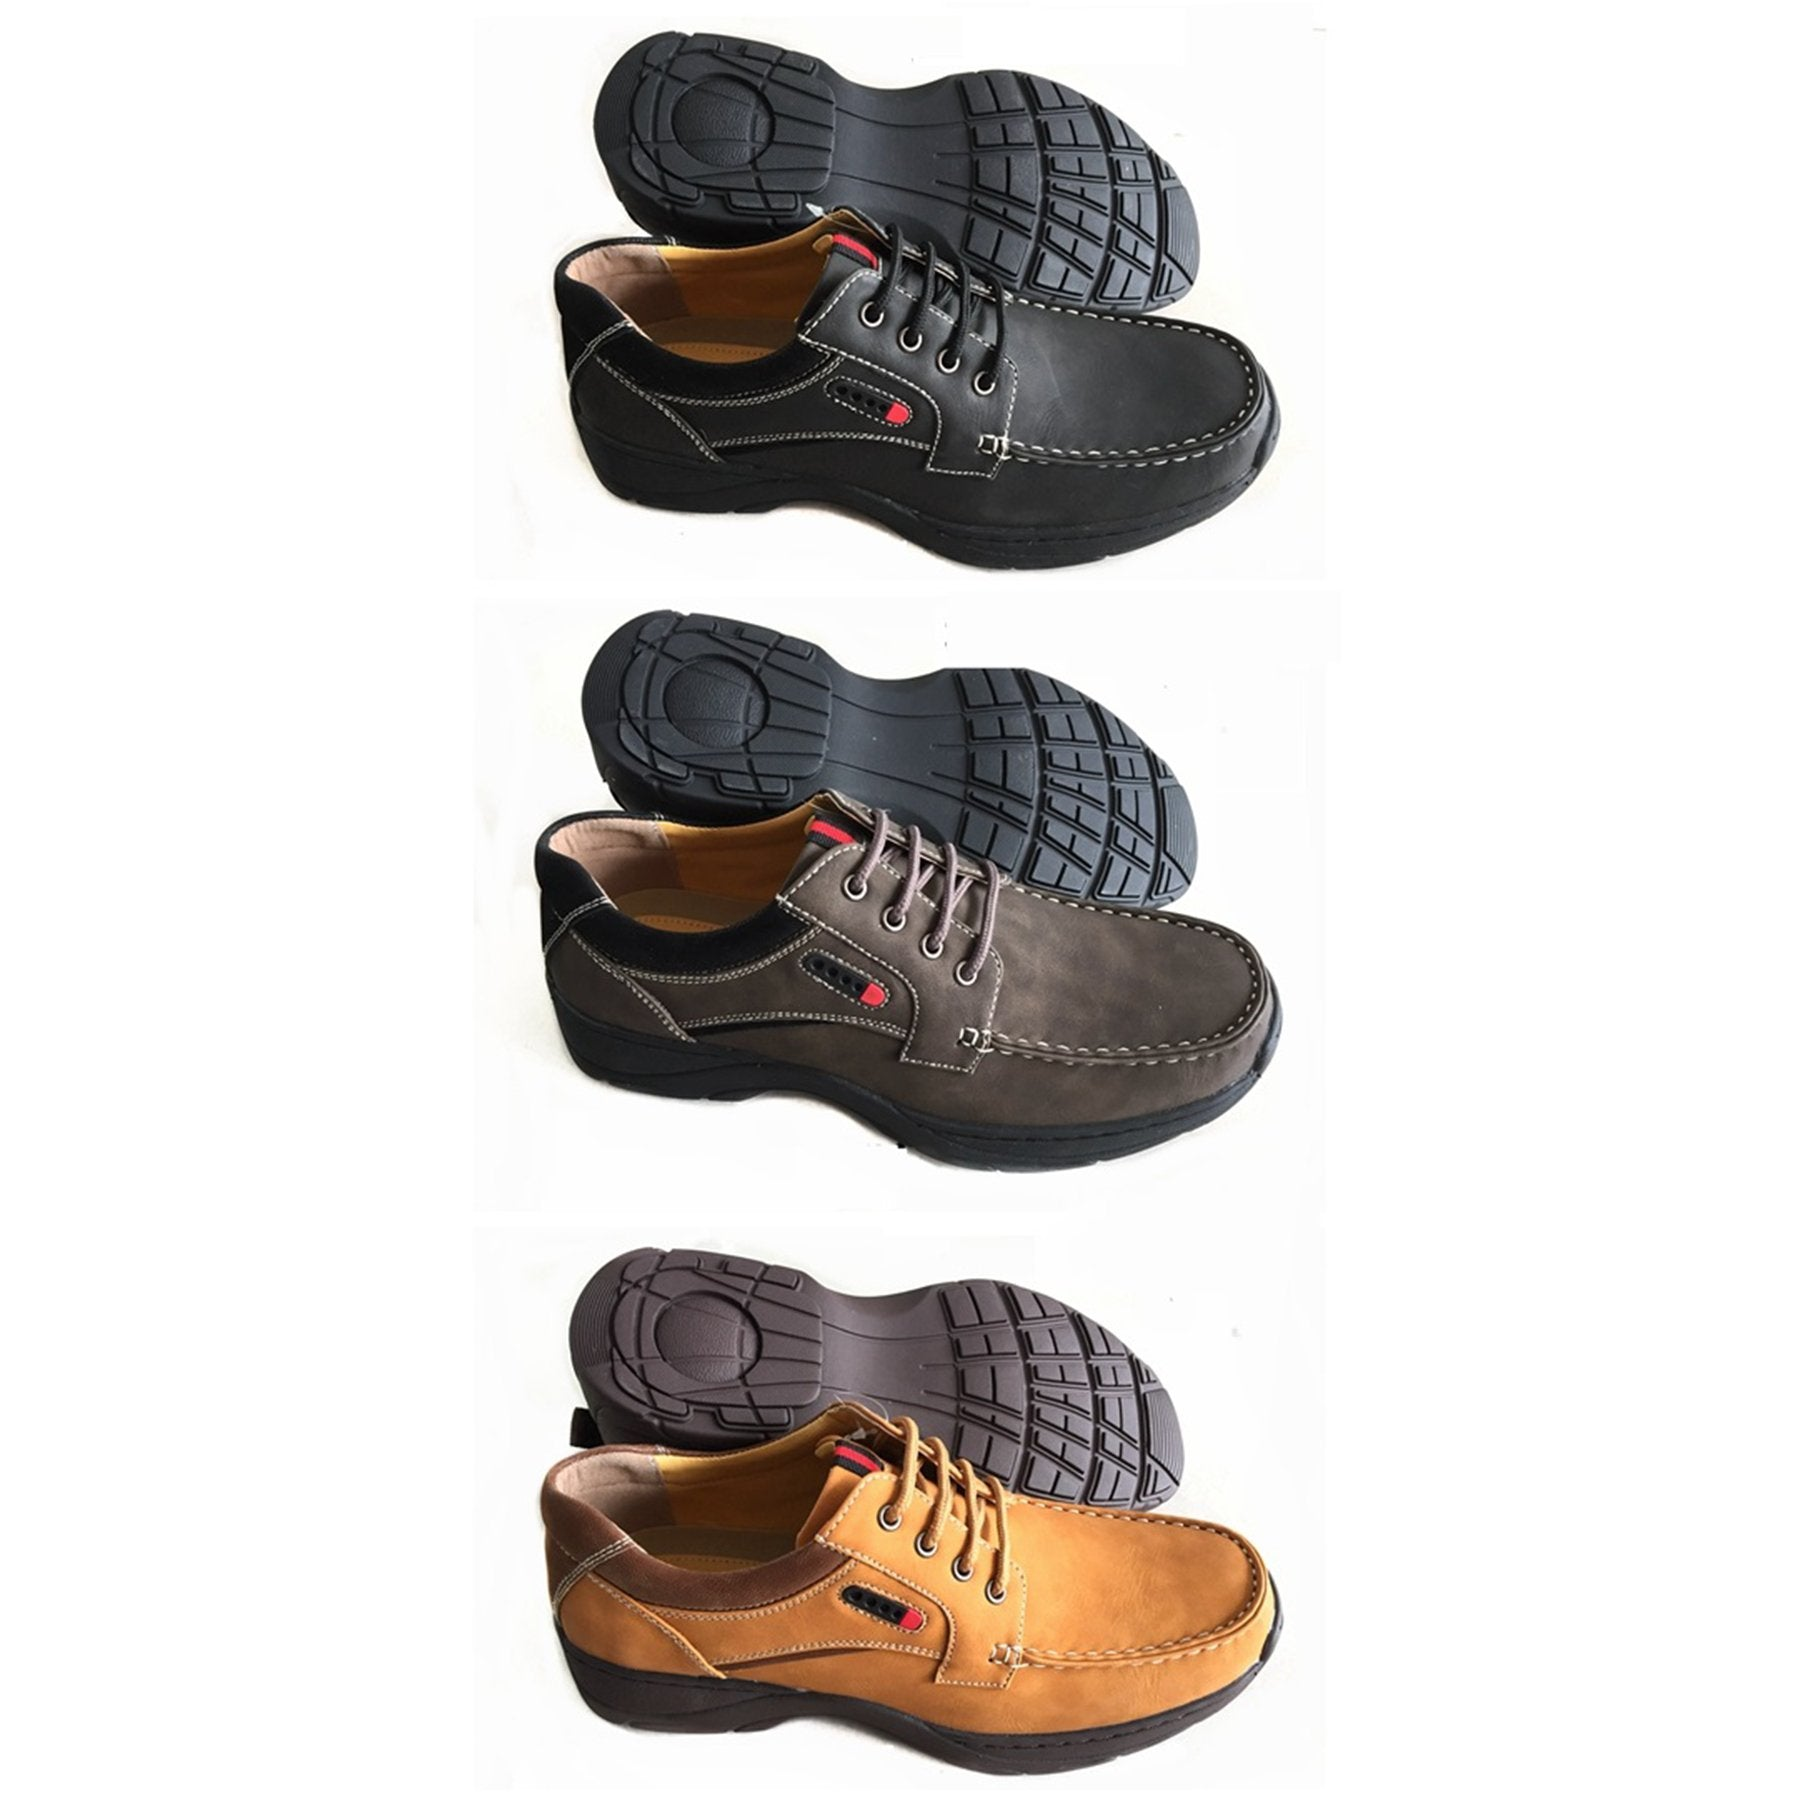 Wholesale Men's SHOES derby lace up boat casual ncps1